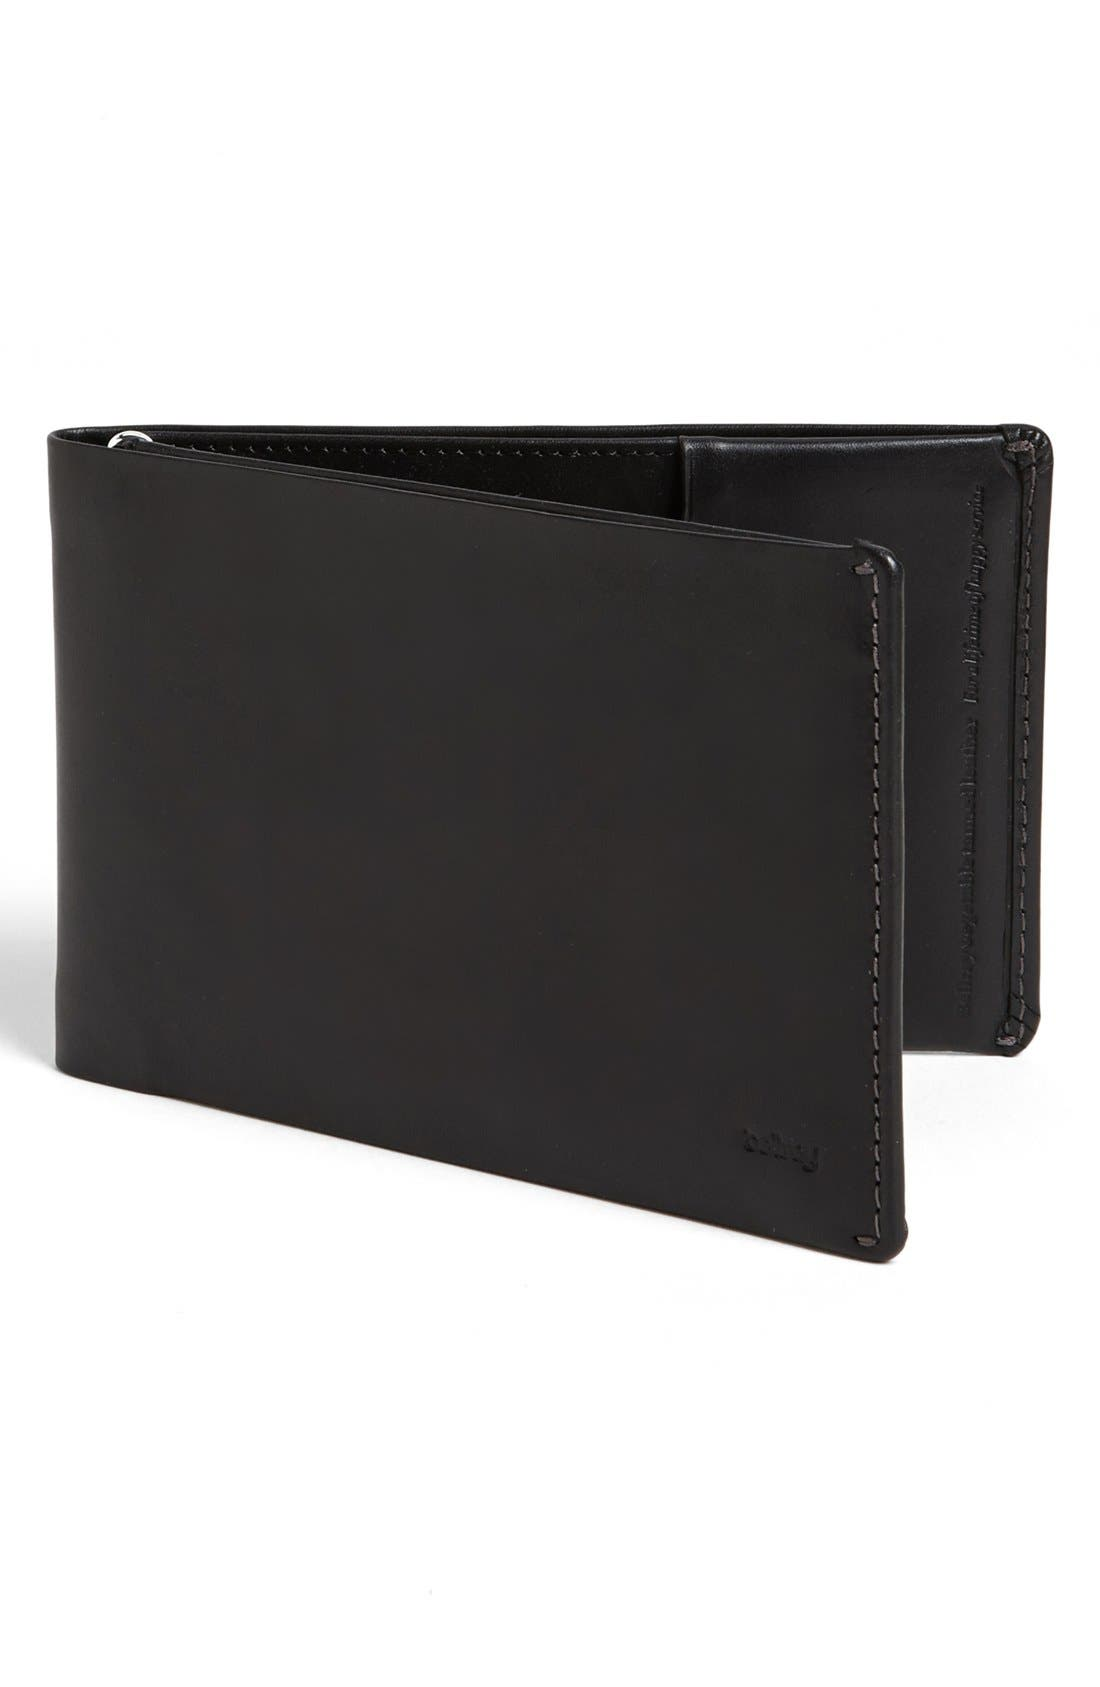 BELLROY Travel Wallet, Main, color, 001